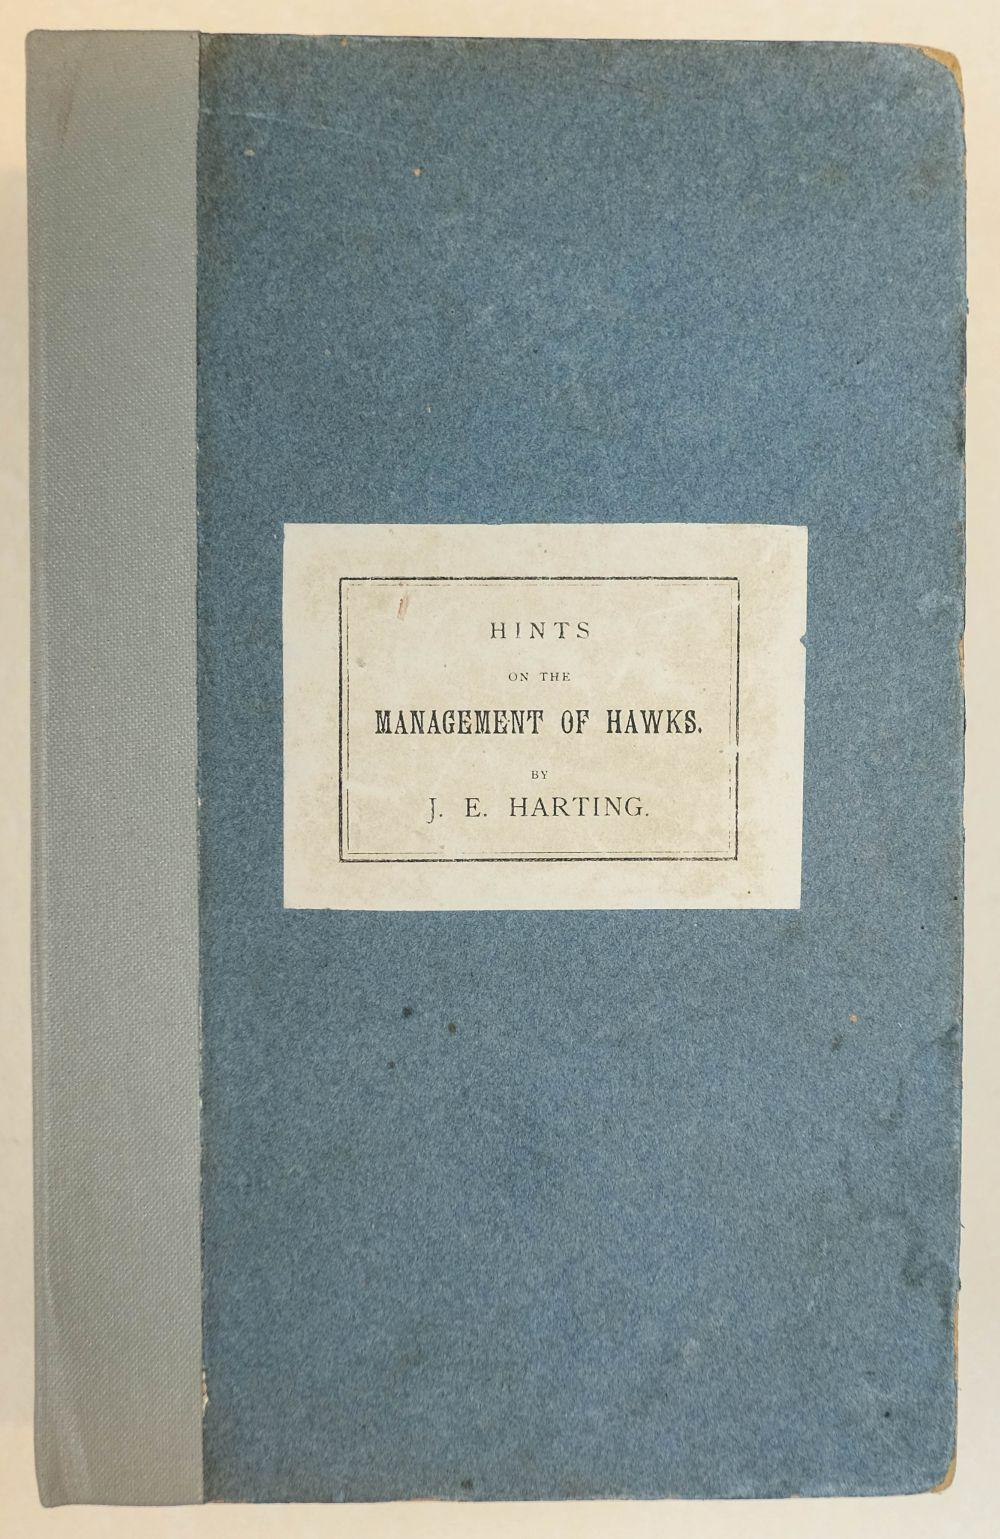 Harting (James Edmund). Hints on the Management of Hawks, 1884,